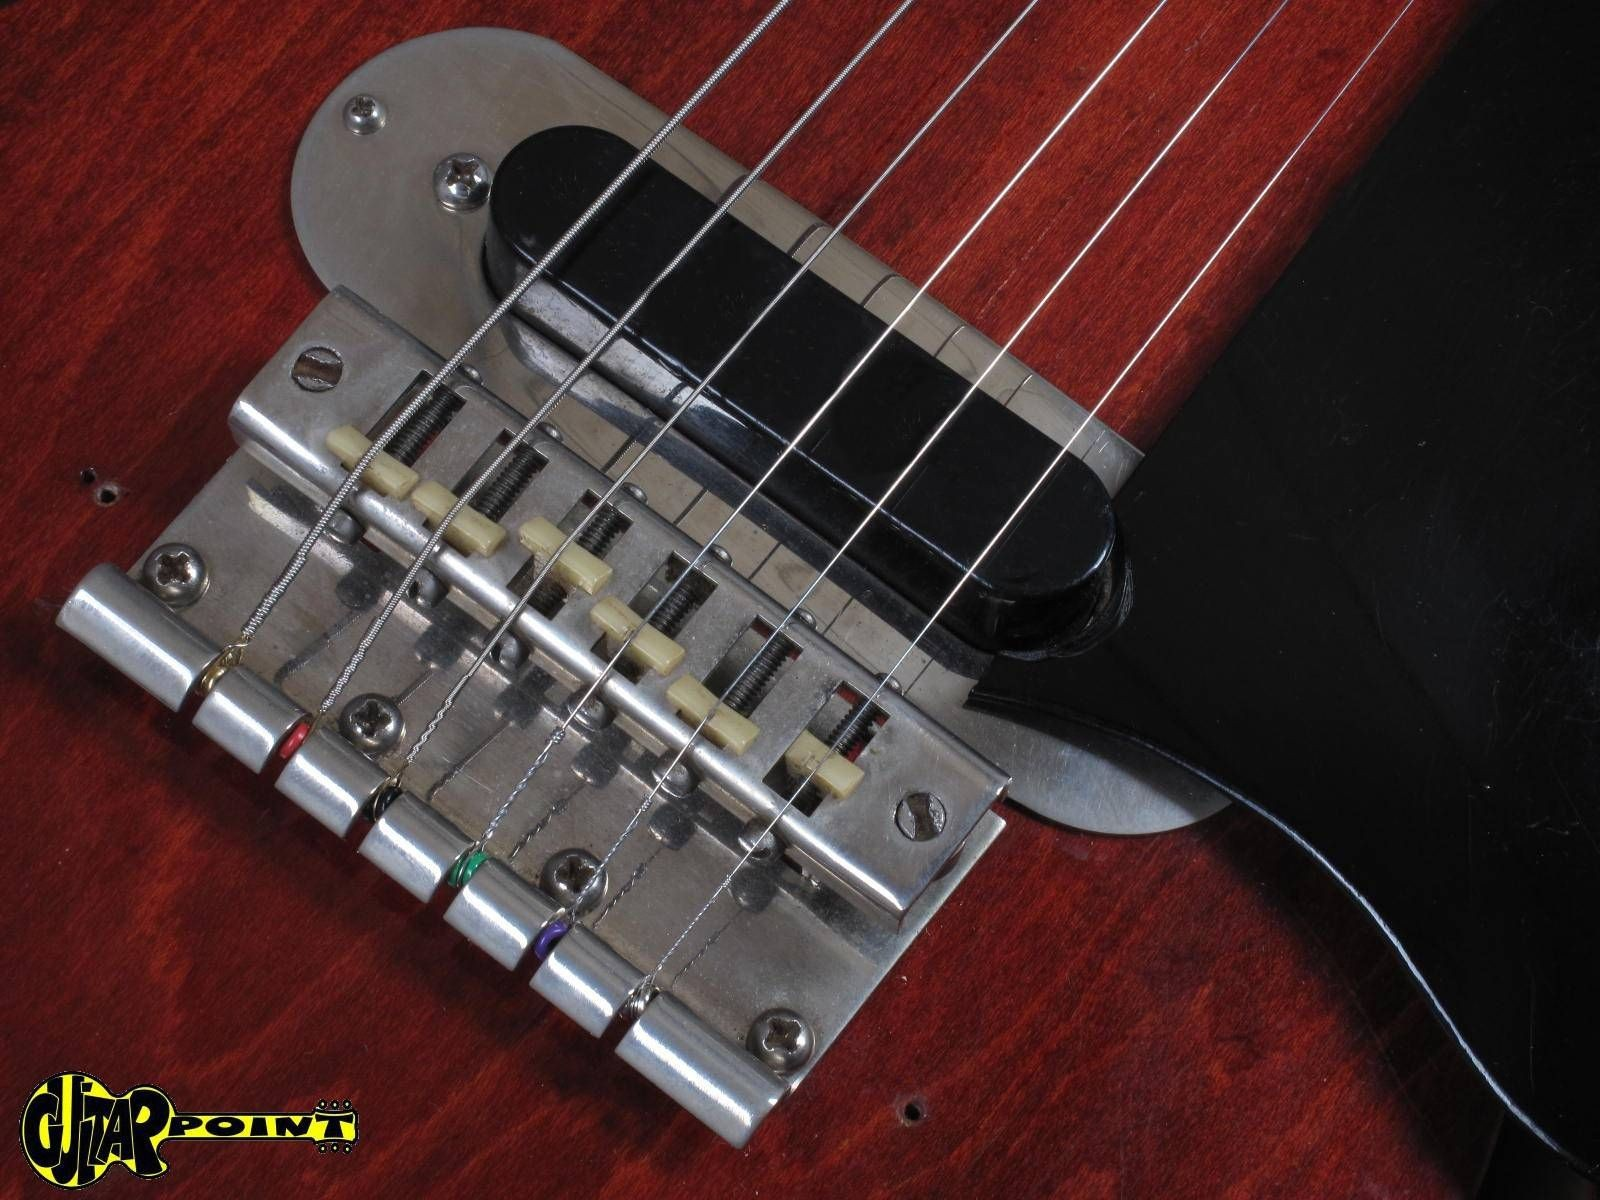 Acoustic Electric Guitar Parts Diagram 1971 Gibson Es 320 Td Cherry Geeitahs Pinterest Of Acoustic Electric Guitar Parts Diagram